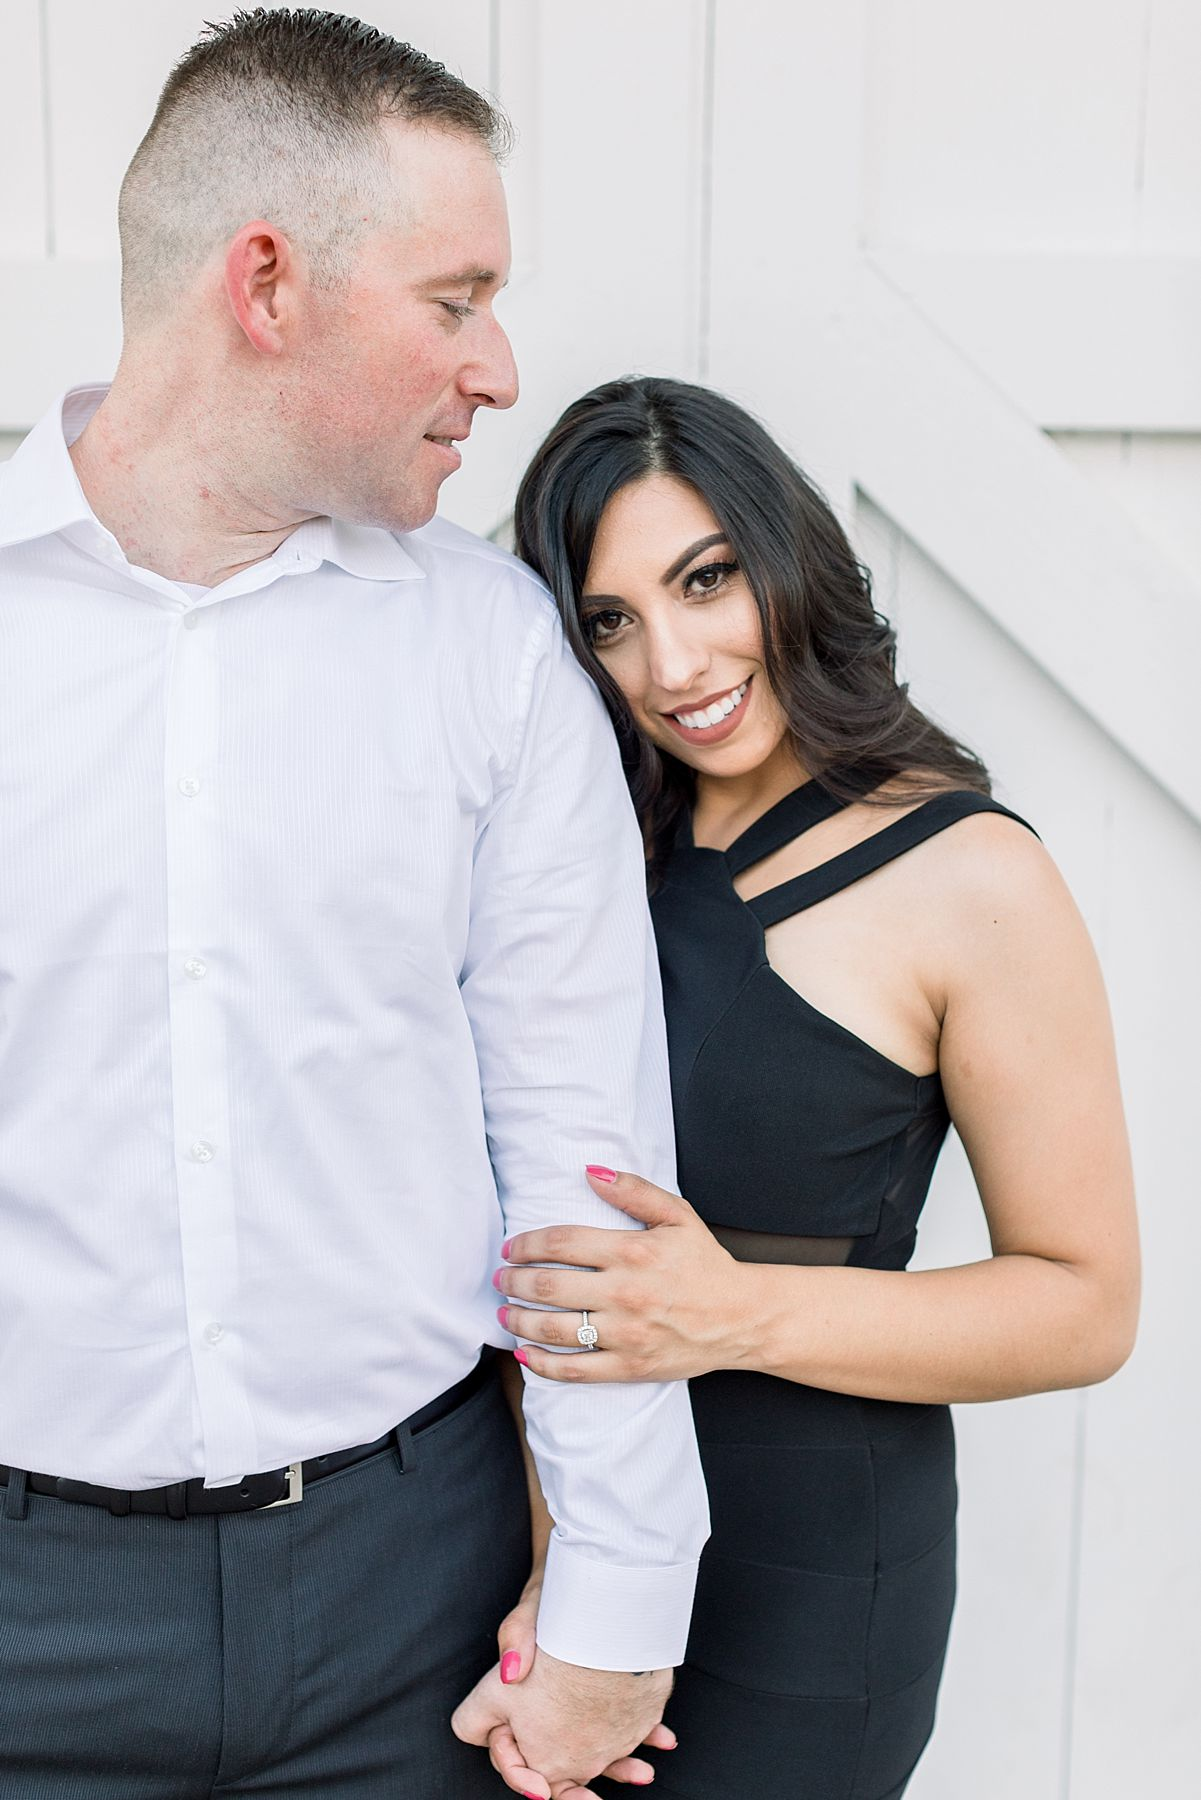 Old Sacramento Engagement Session - Downtown Sacramento Engagement Session - Black Tie Engagement Photos - Ashley Baumgartner - Sacramento Wedding Photographer_0007.jpg